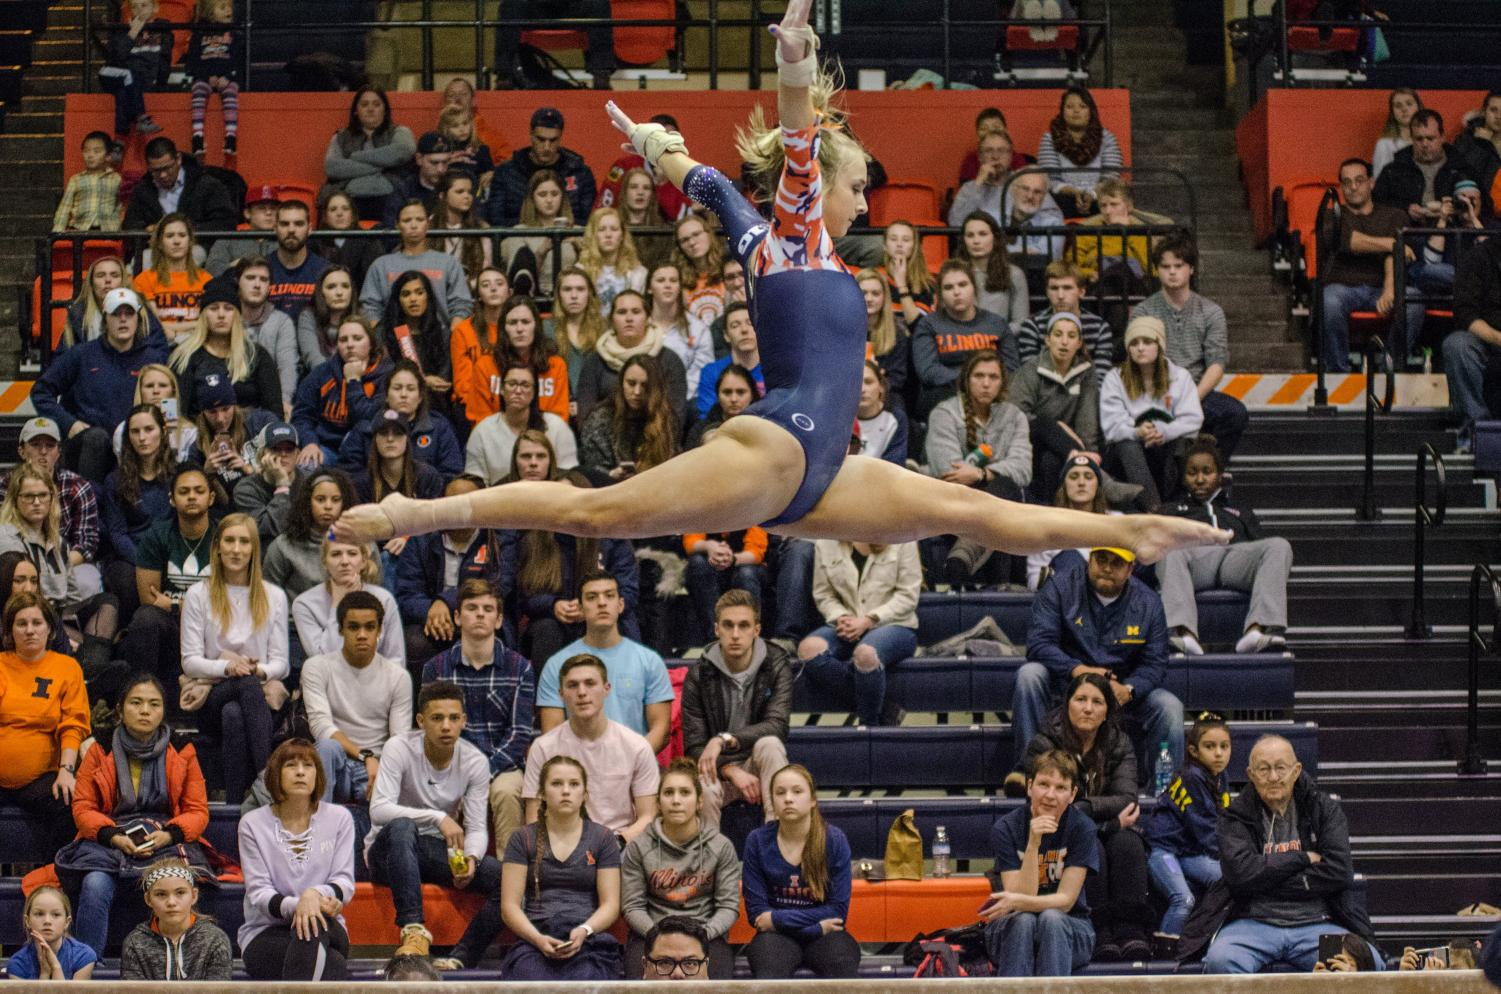 Rachael Donovan performs her beam routine during Illinois' meet against Michigan on Jan. 19, 2018. Illinois lost to Michigan 194.325 to 194.975.